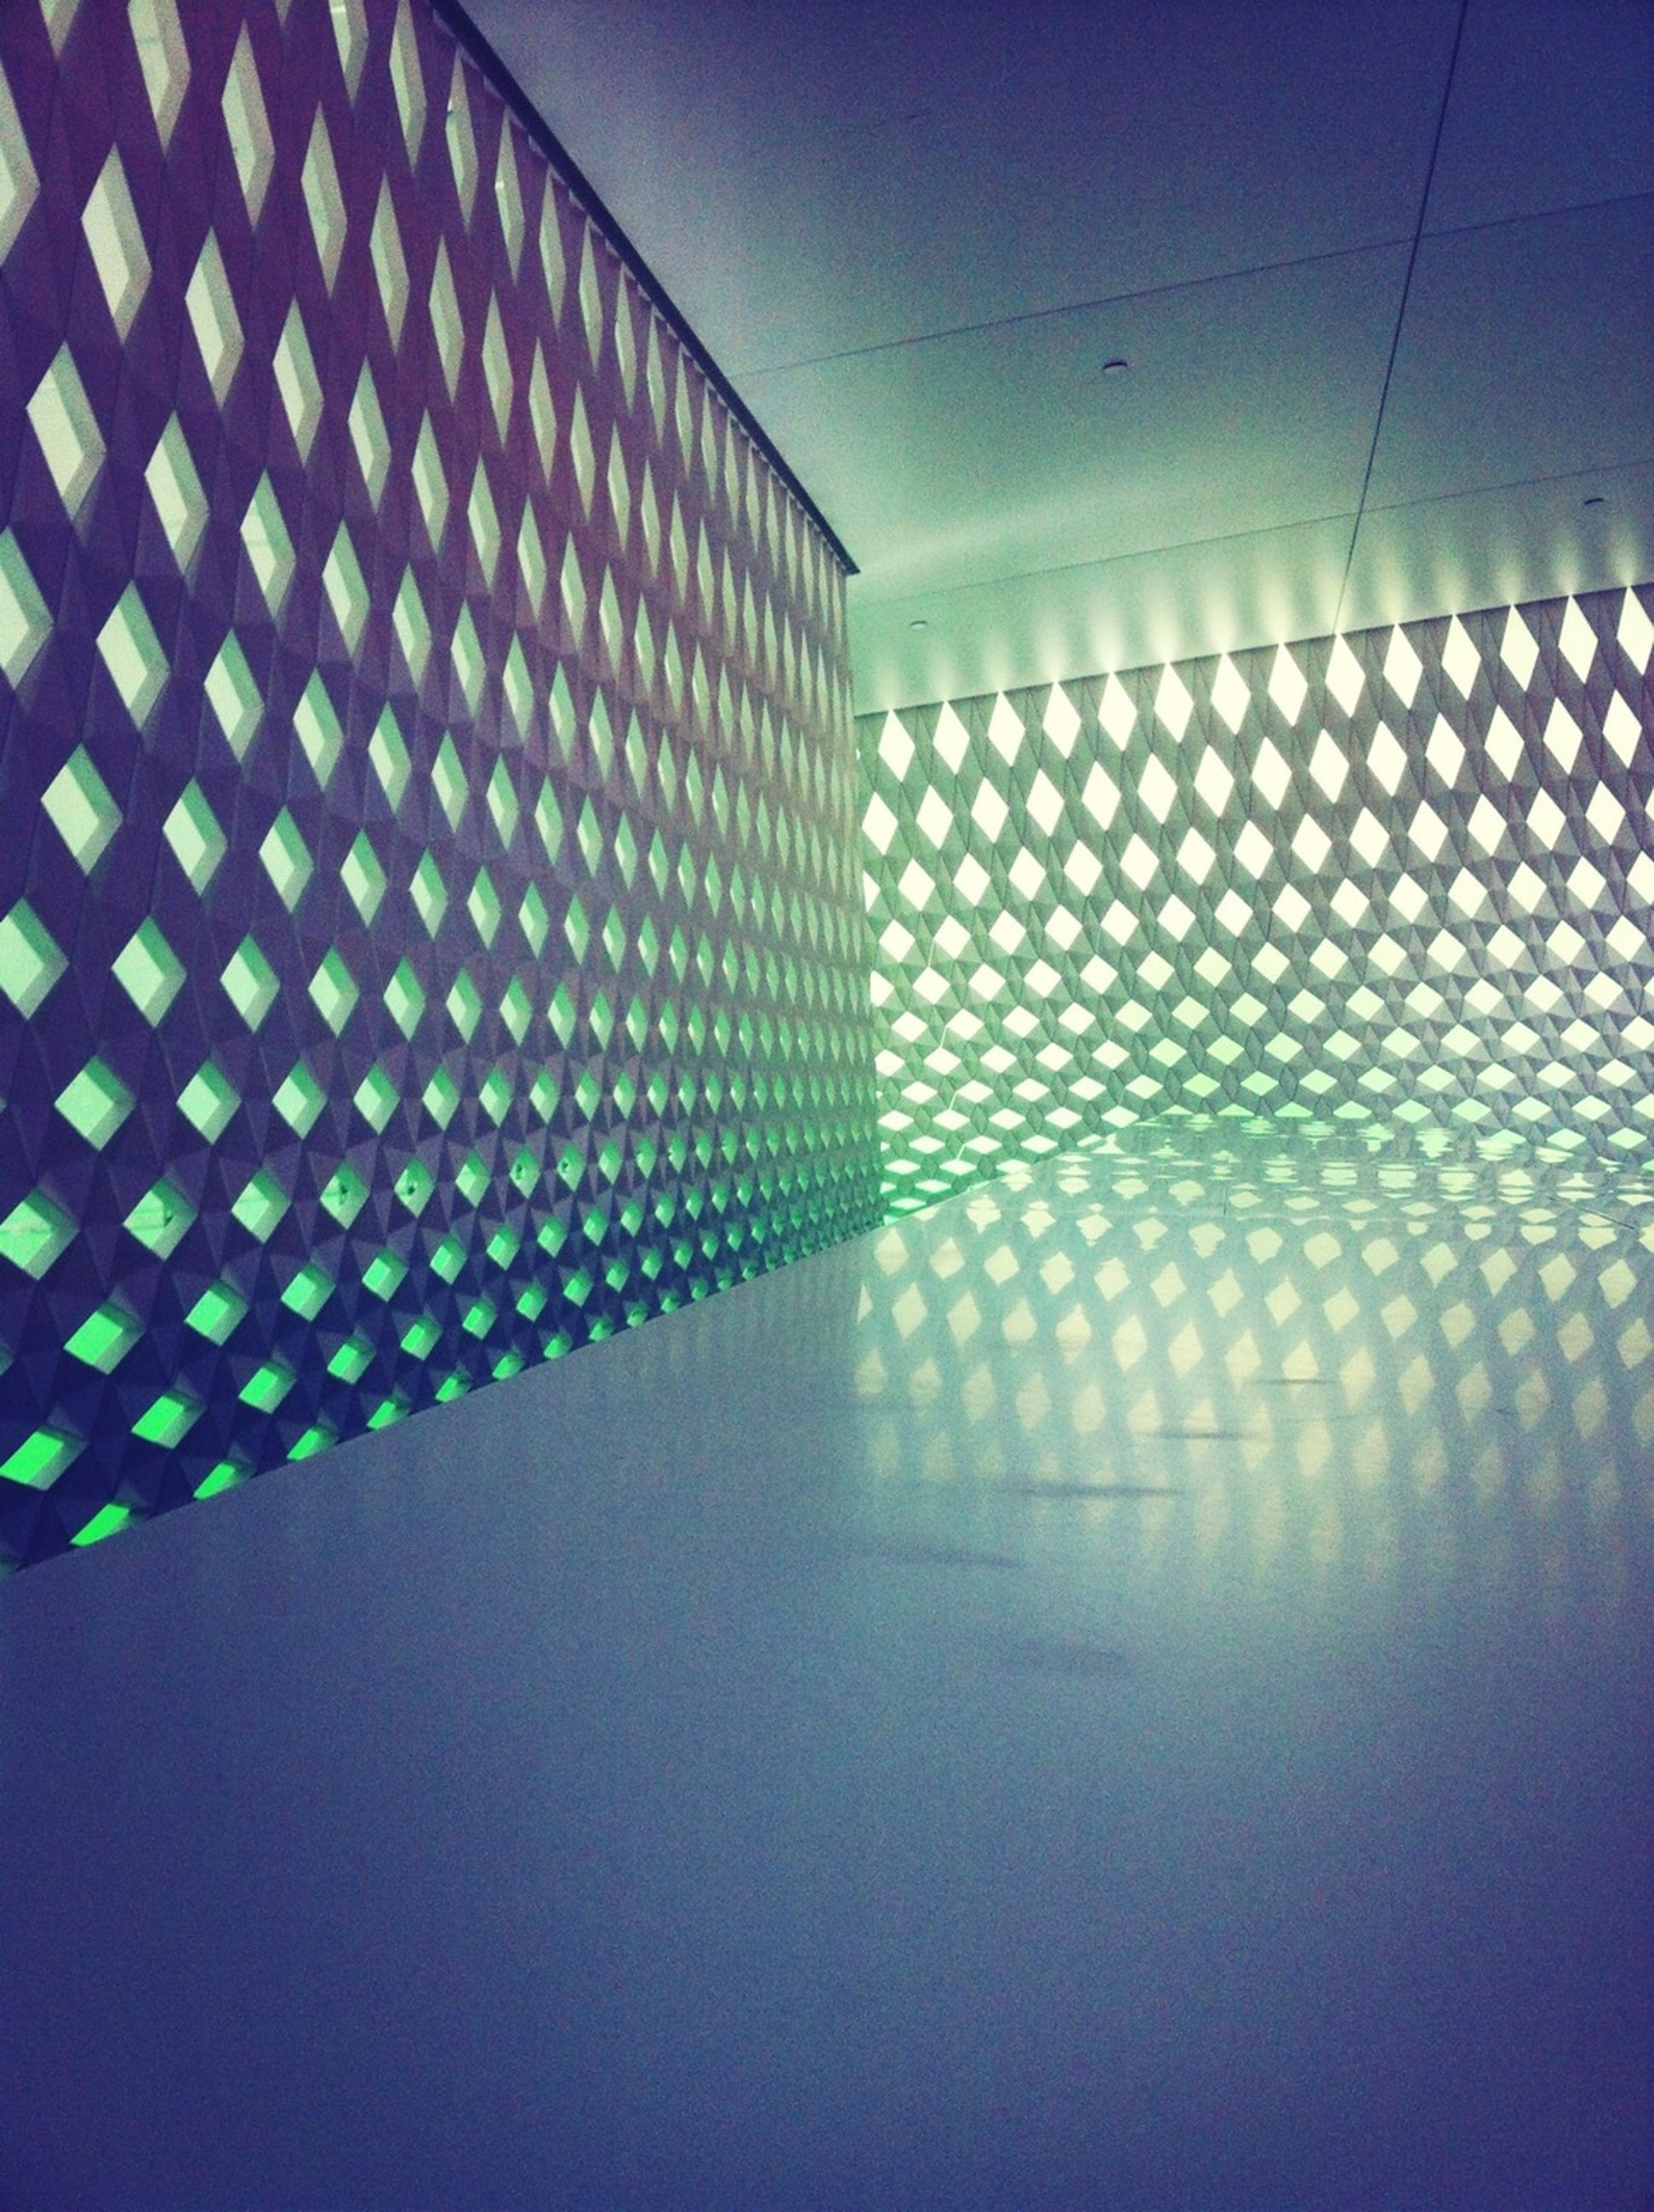 indoors, wall - building feature, architecture, ceiling, built structure, illuminated, pattern, lighting equipment, wall, blue, flooring, home interior, no people, window, empty, absence, tile, reflection, modern, light - natural phenomenon